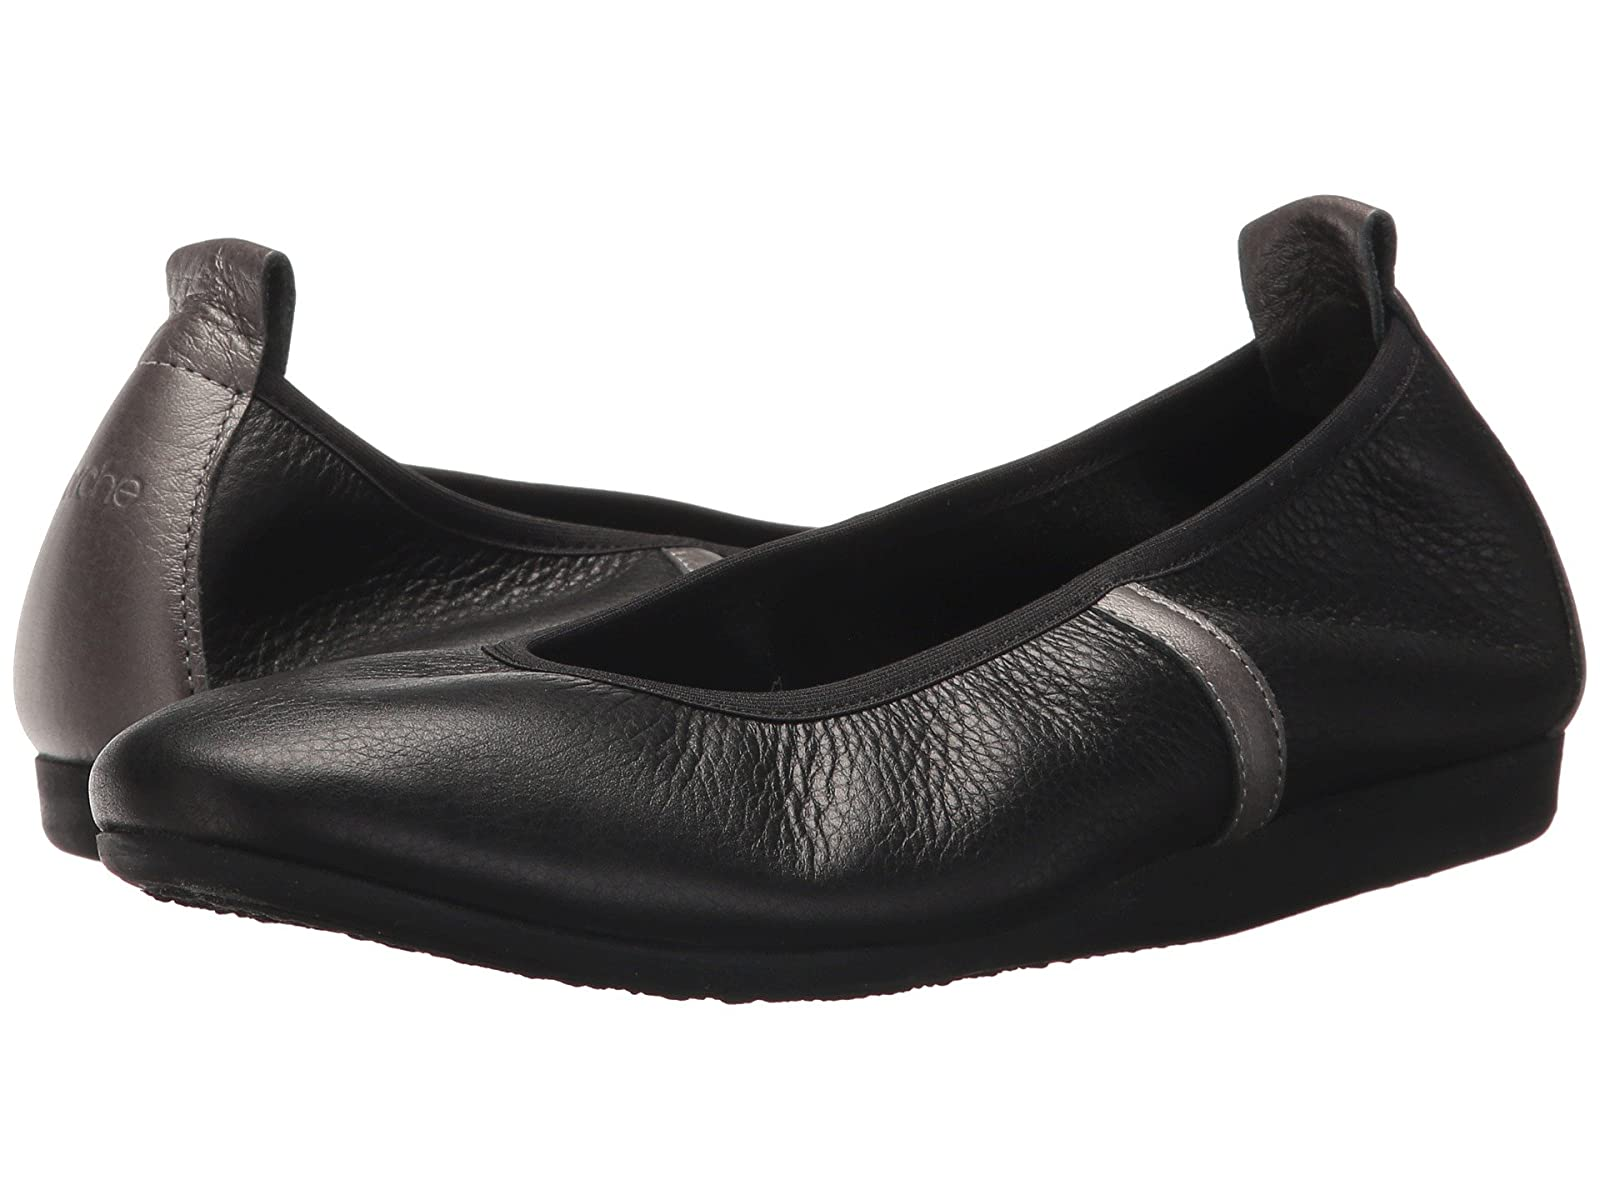 Arche LamourAtmospheric grades have affordable shoes